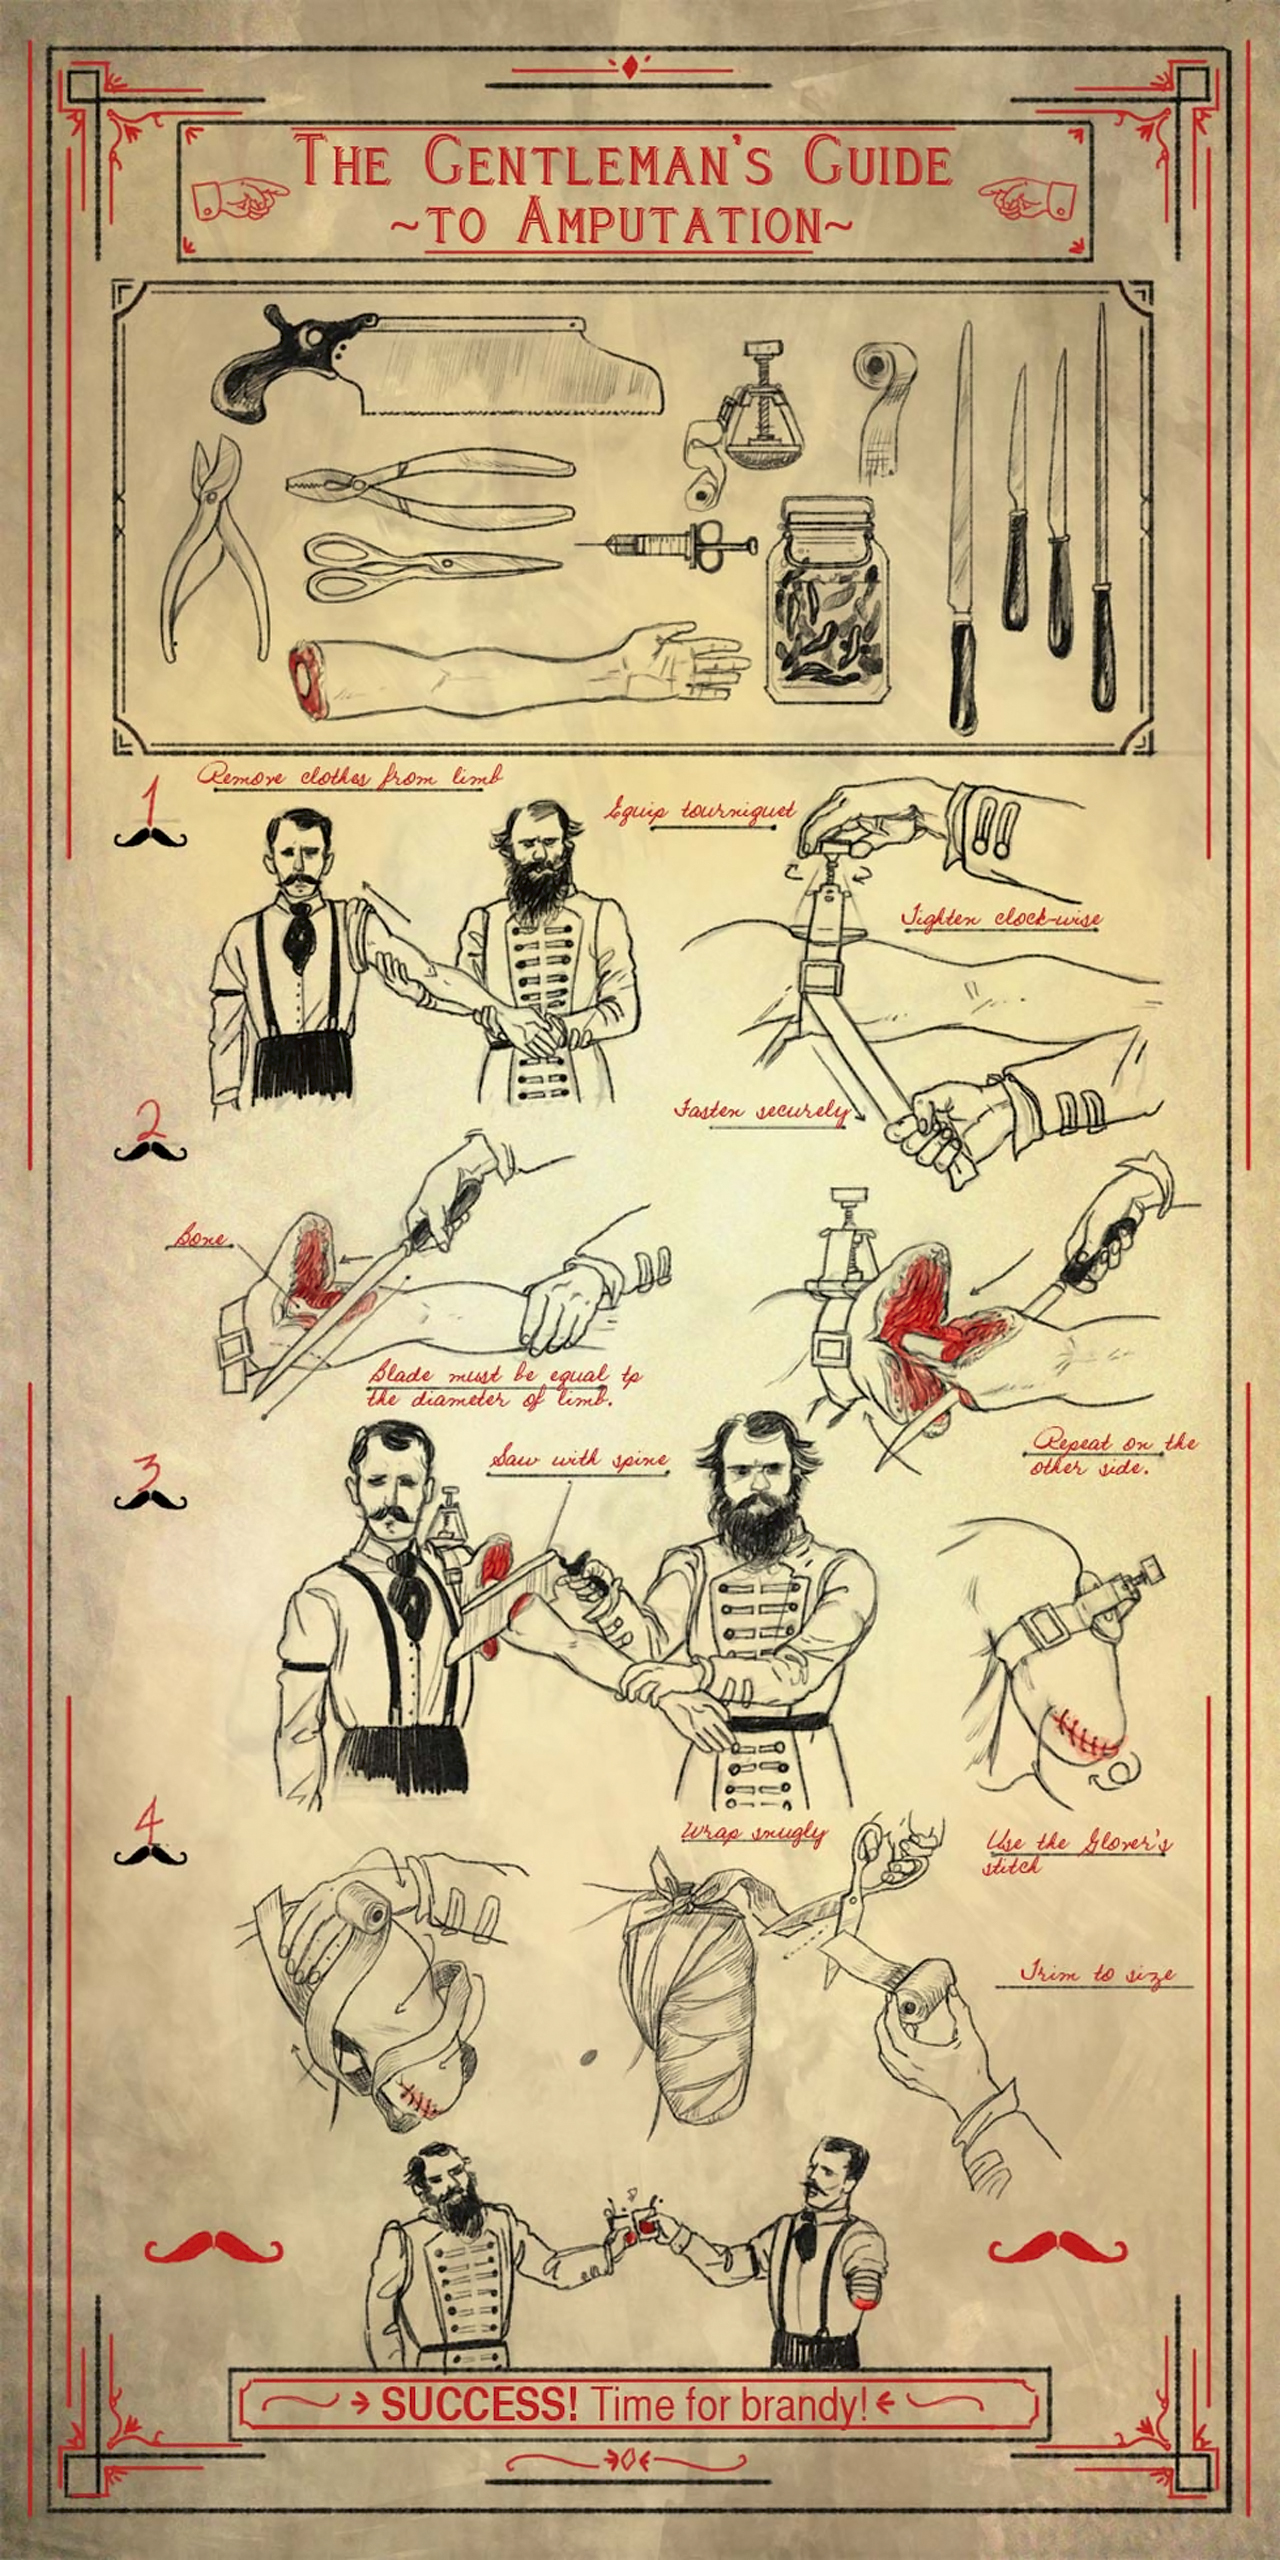 THE GENTLEMANS GUIDE TO AMPUTATION